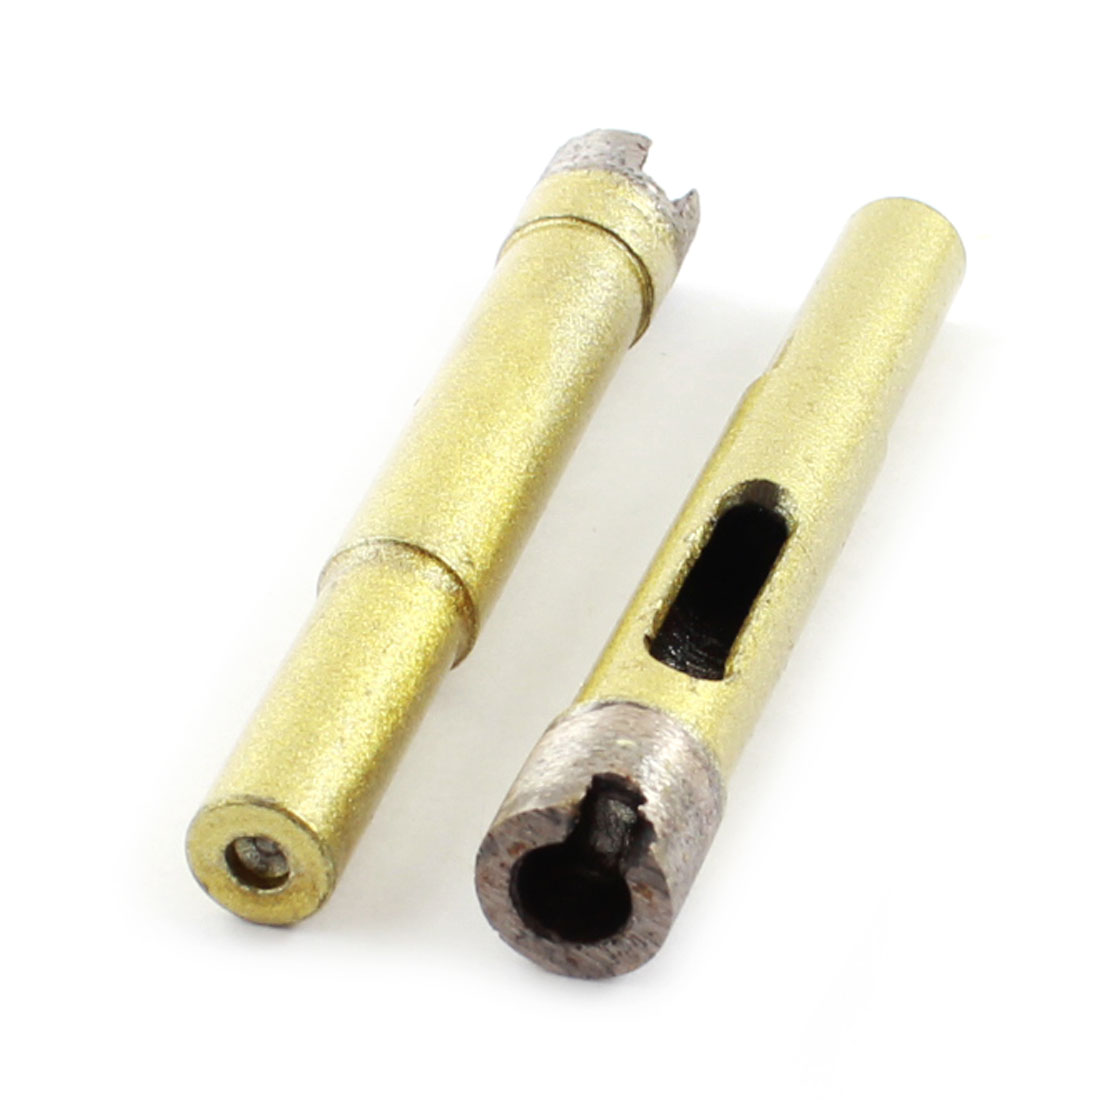 2PCS Gold Tone 10mm Dia Diamond Marble Granite Cutting Hole Saws